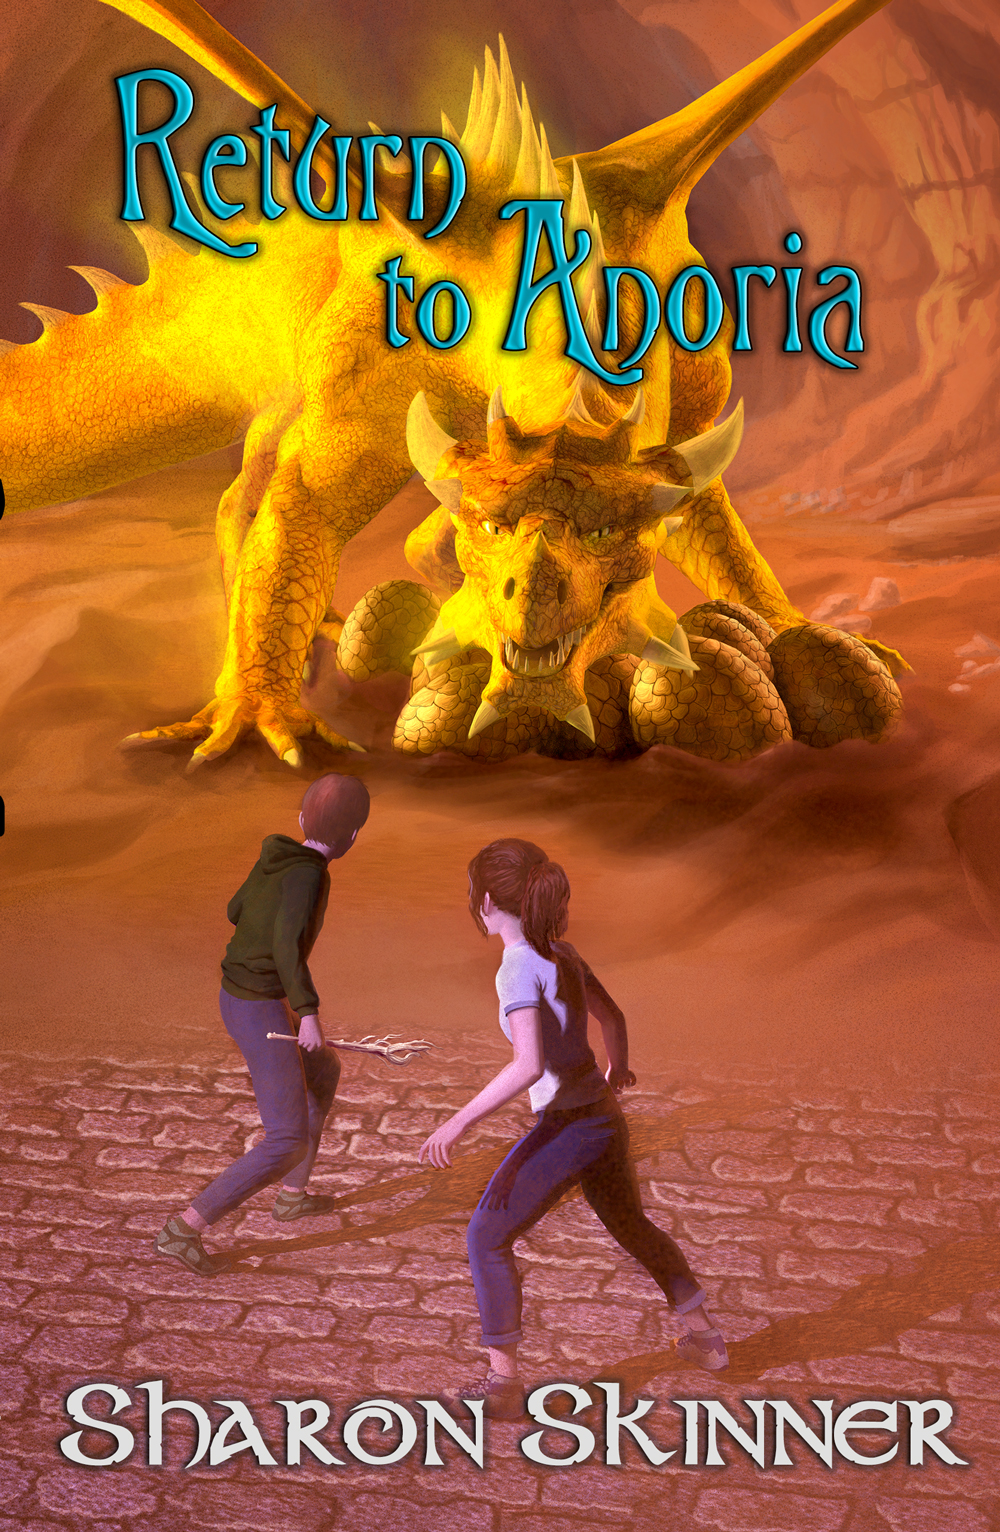 Return to Anoria Author: Sharon Skinner Publisher Name: Brick Cave Books Date of Publication: October 15, 2020